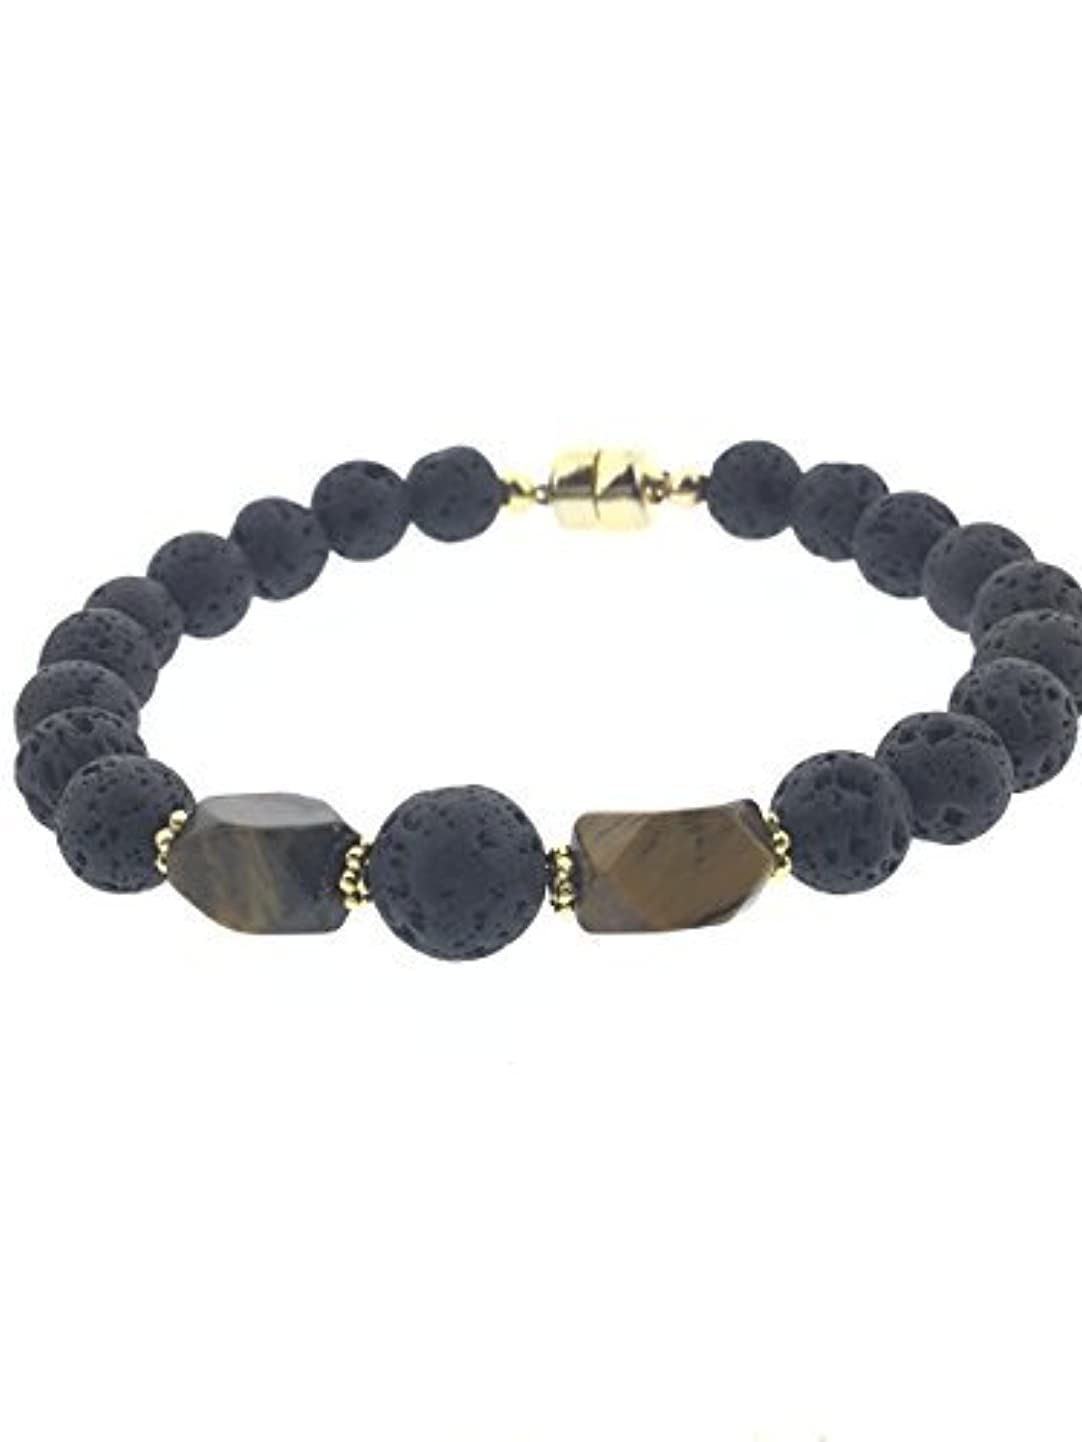 アソシエイト南紛争Tiger-eye and Lava Essential Oil Diffuser Bracelet with Gold-Filled Rare Earth Magnetic Clasp - SMALL [並行輸入品]